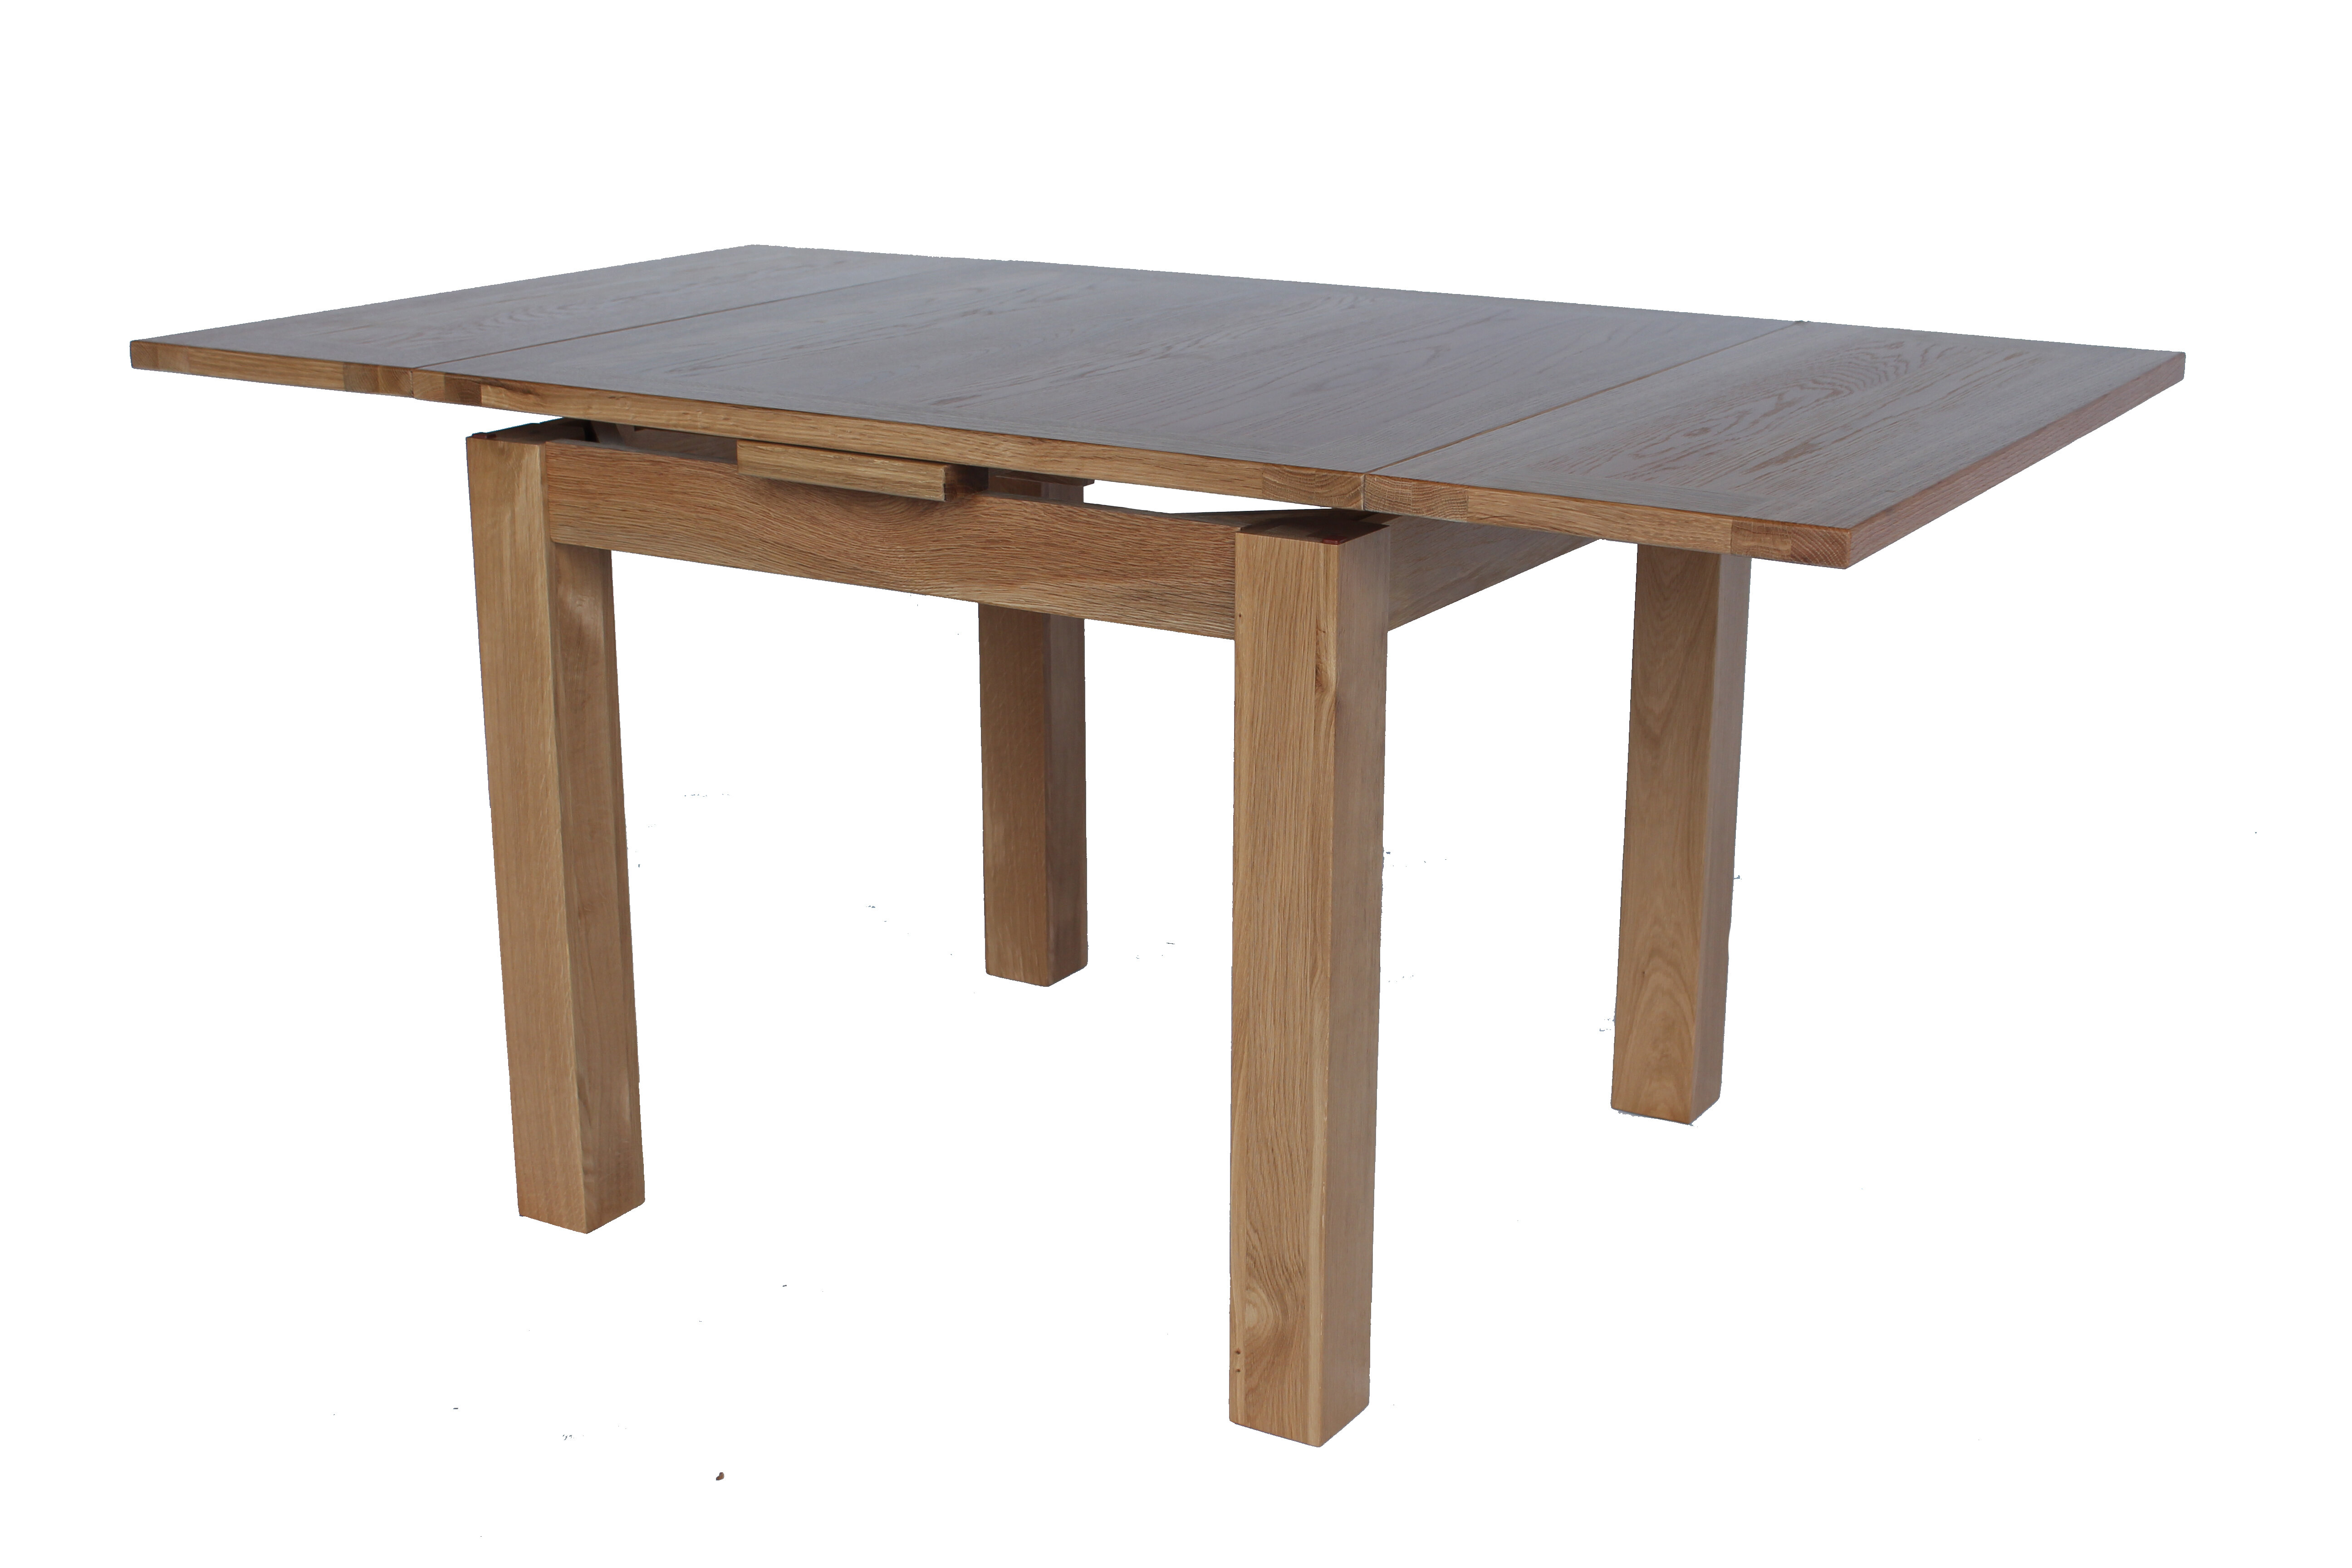 square extendable dining table. Square Extendable Dining Table D